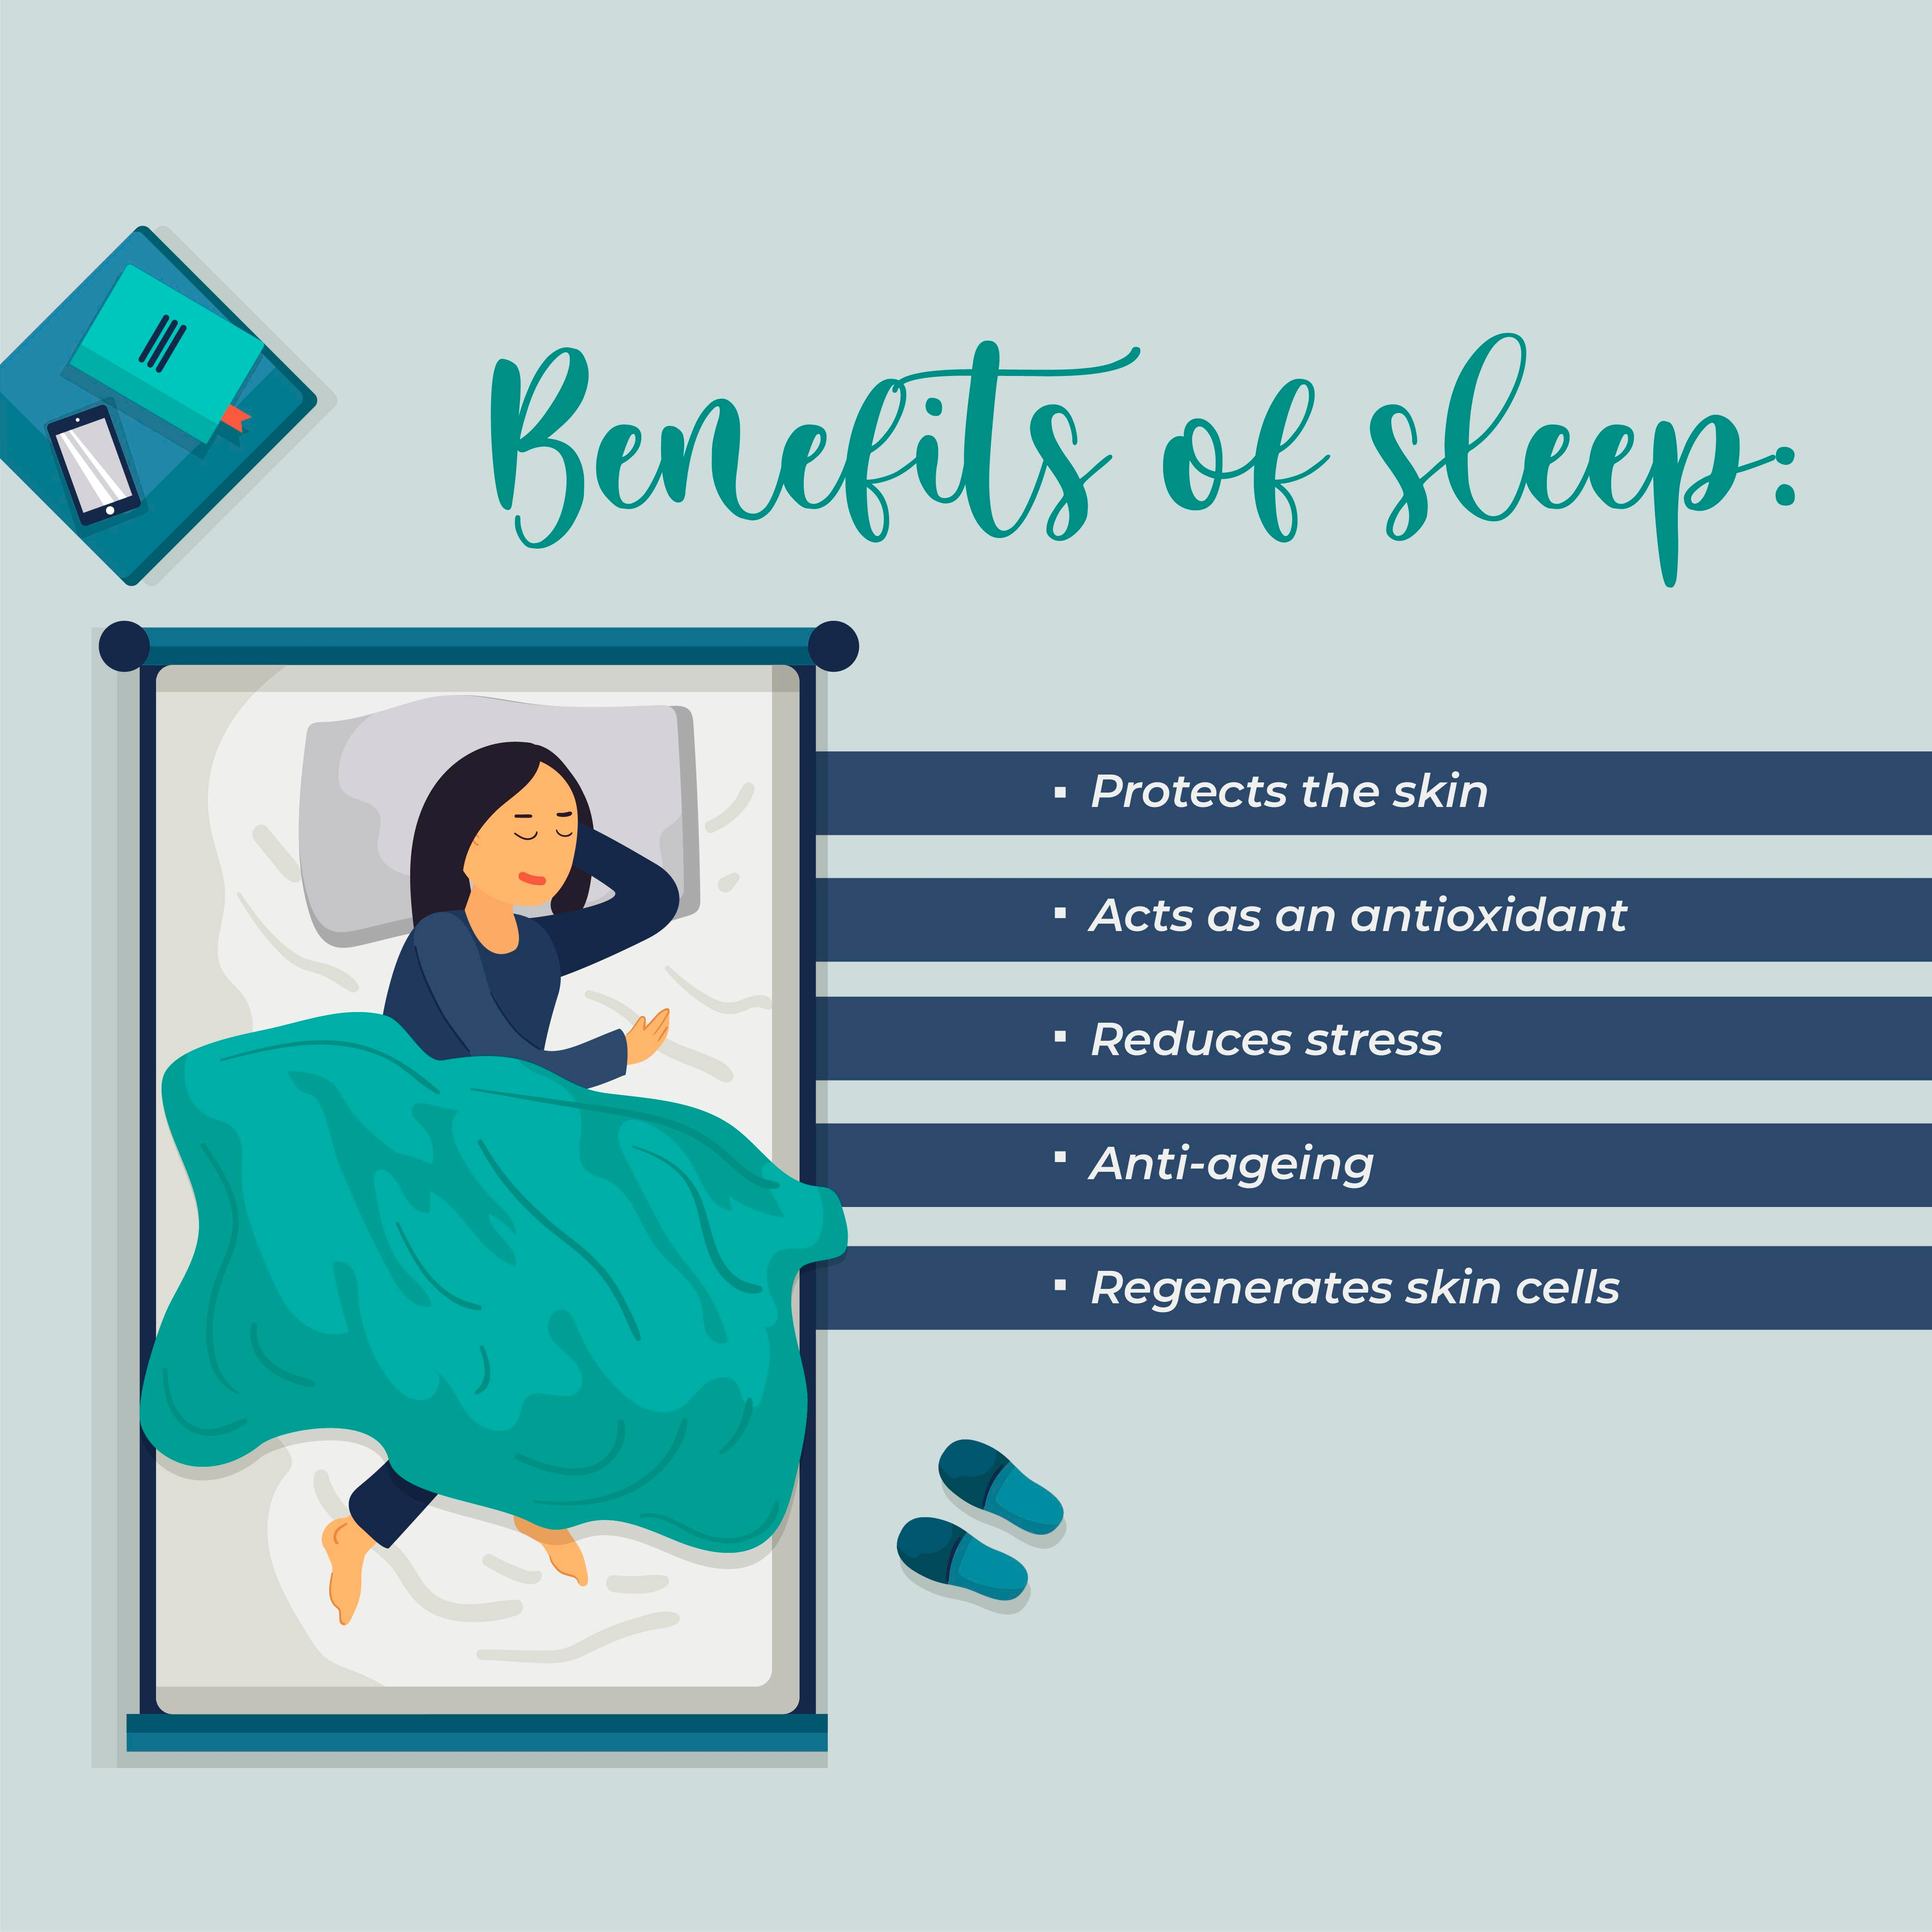 This is an image of the benefits of the sleep